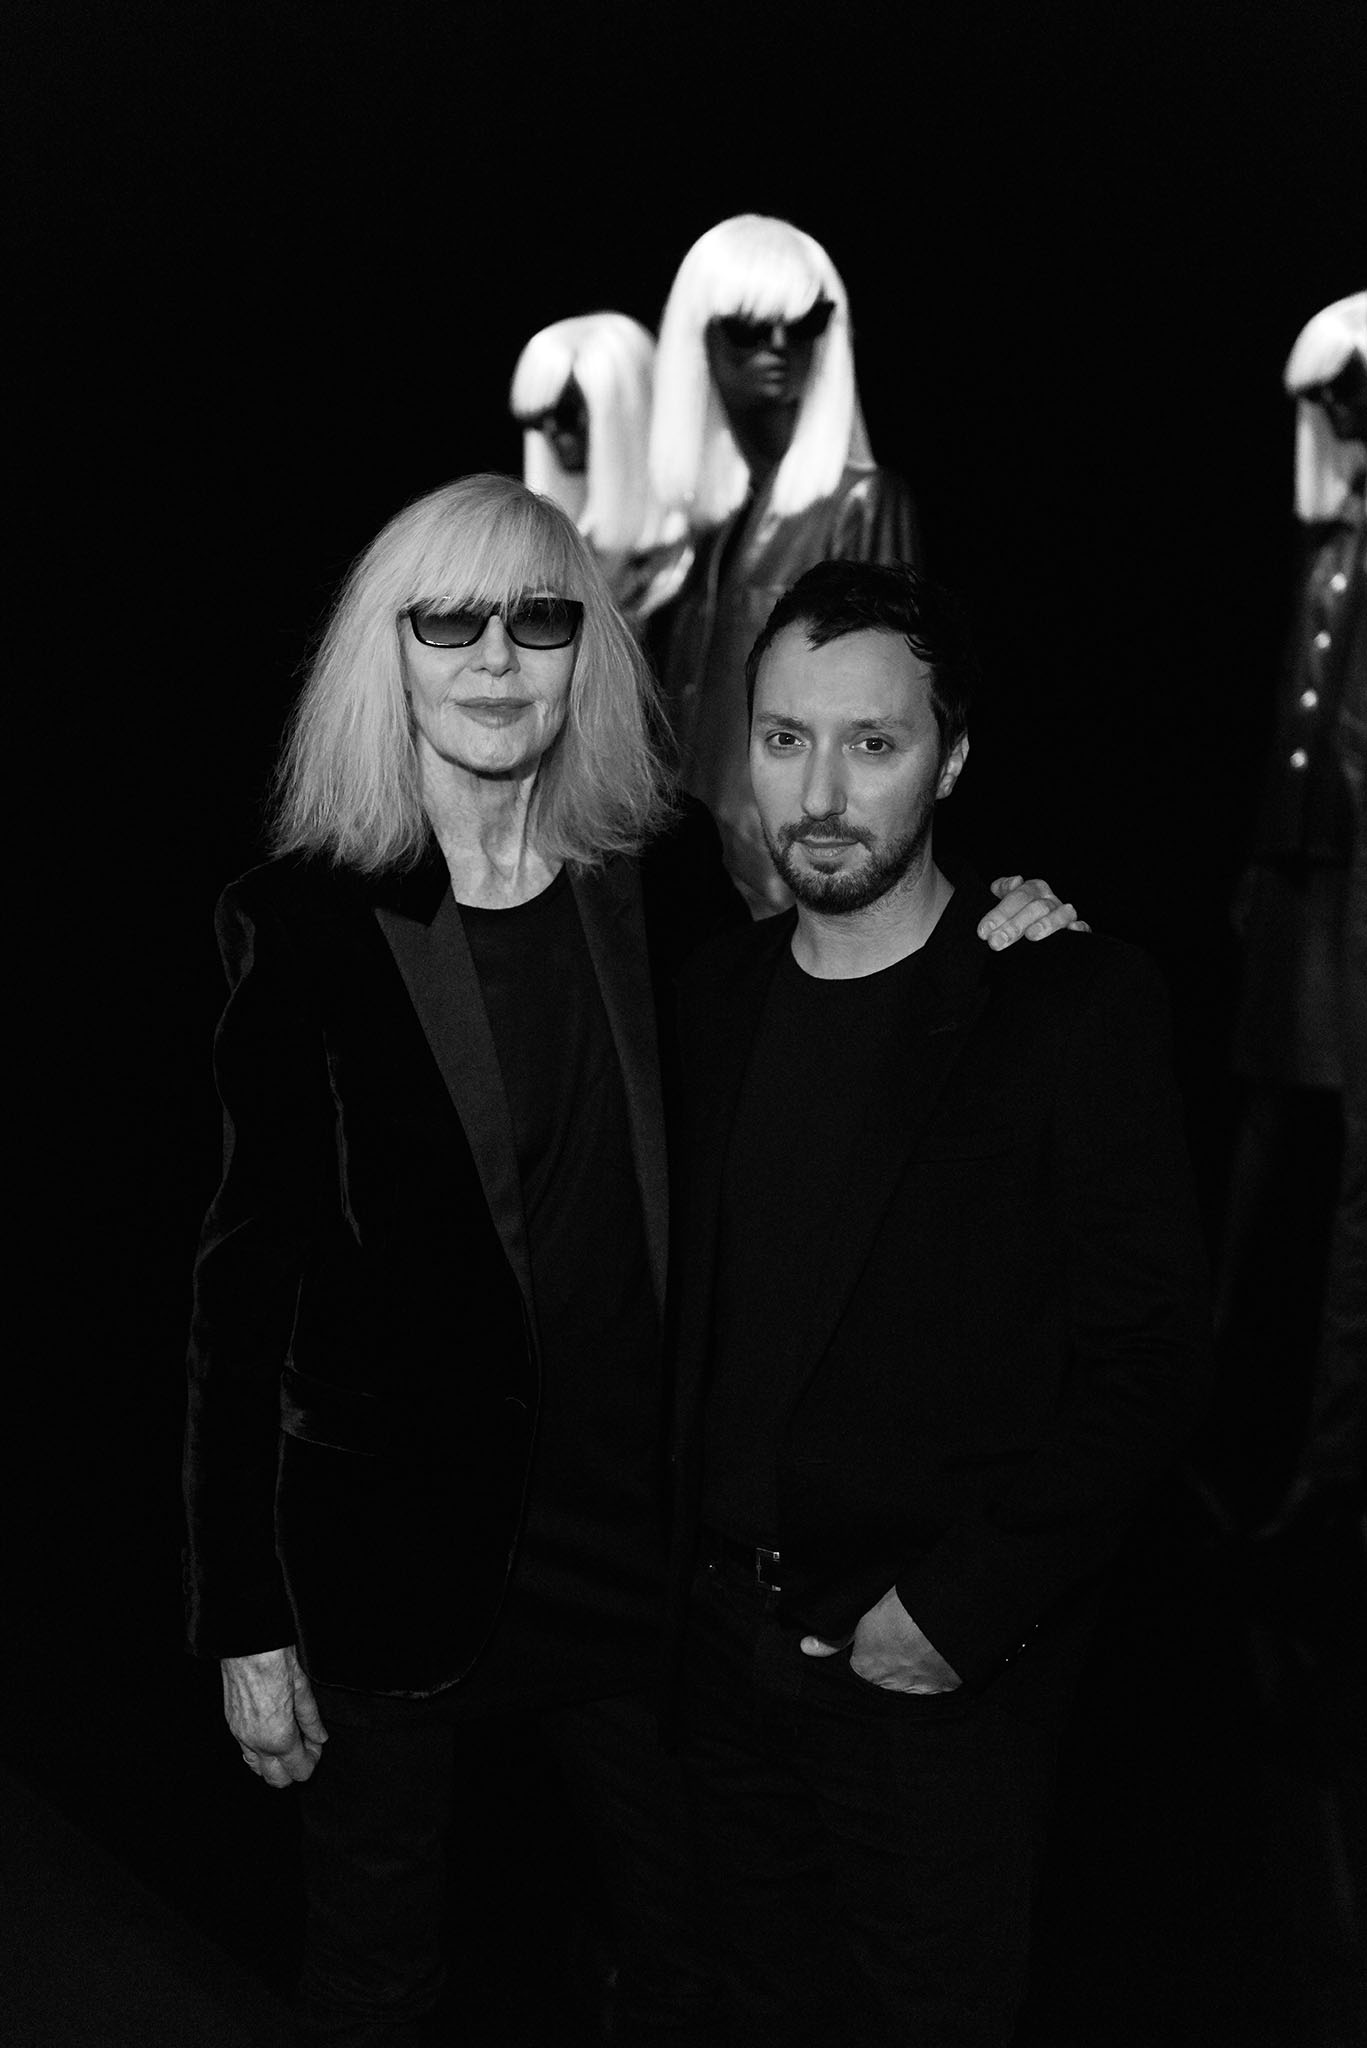 Betty Catroux and Anthony Vaccarello